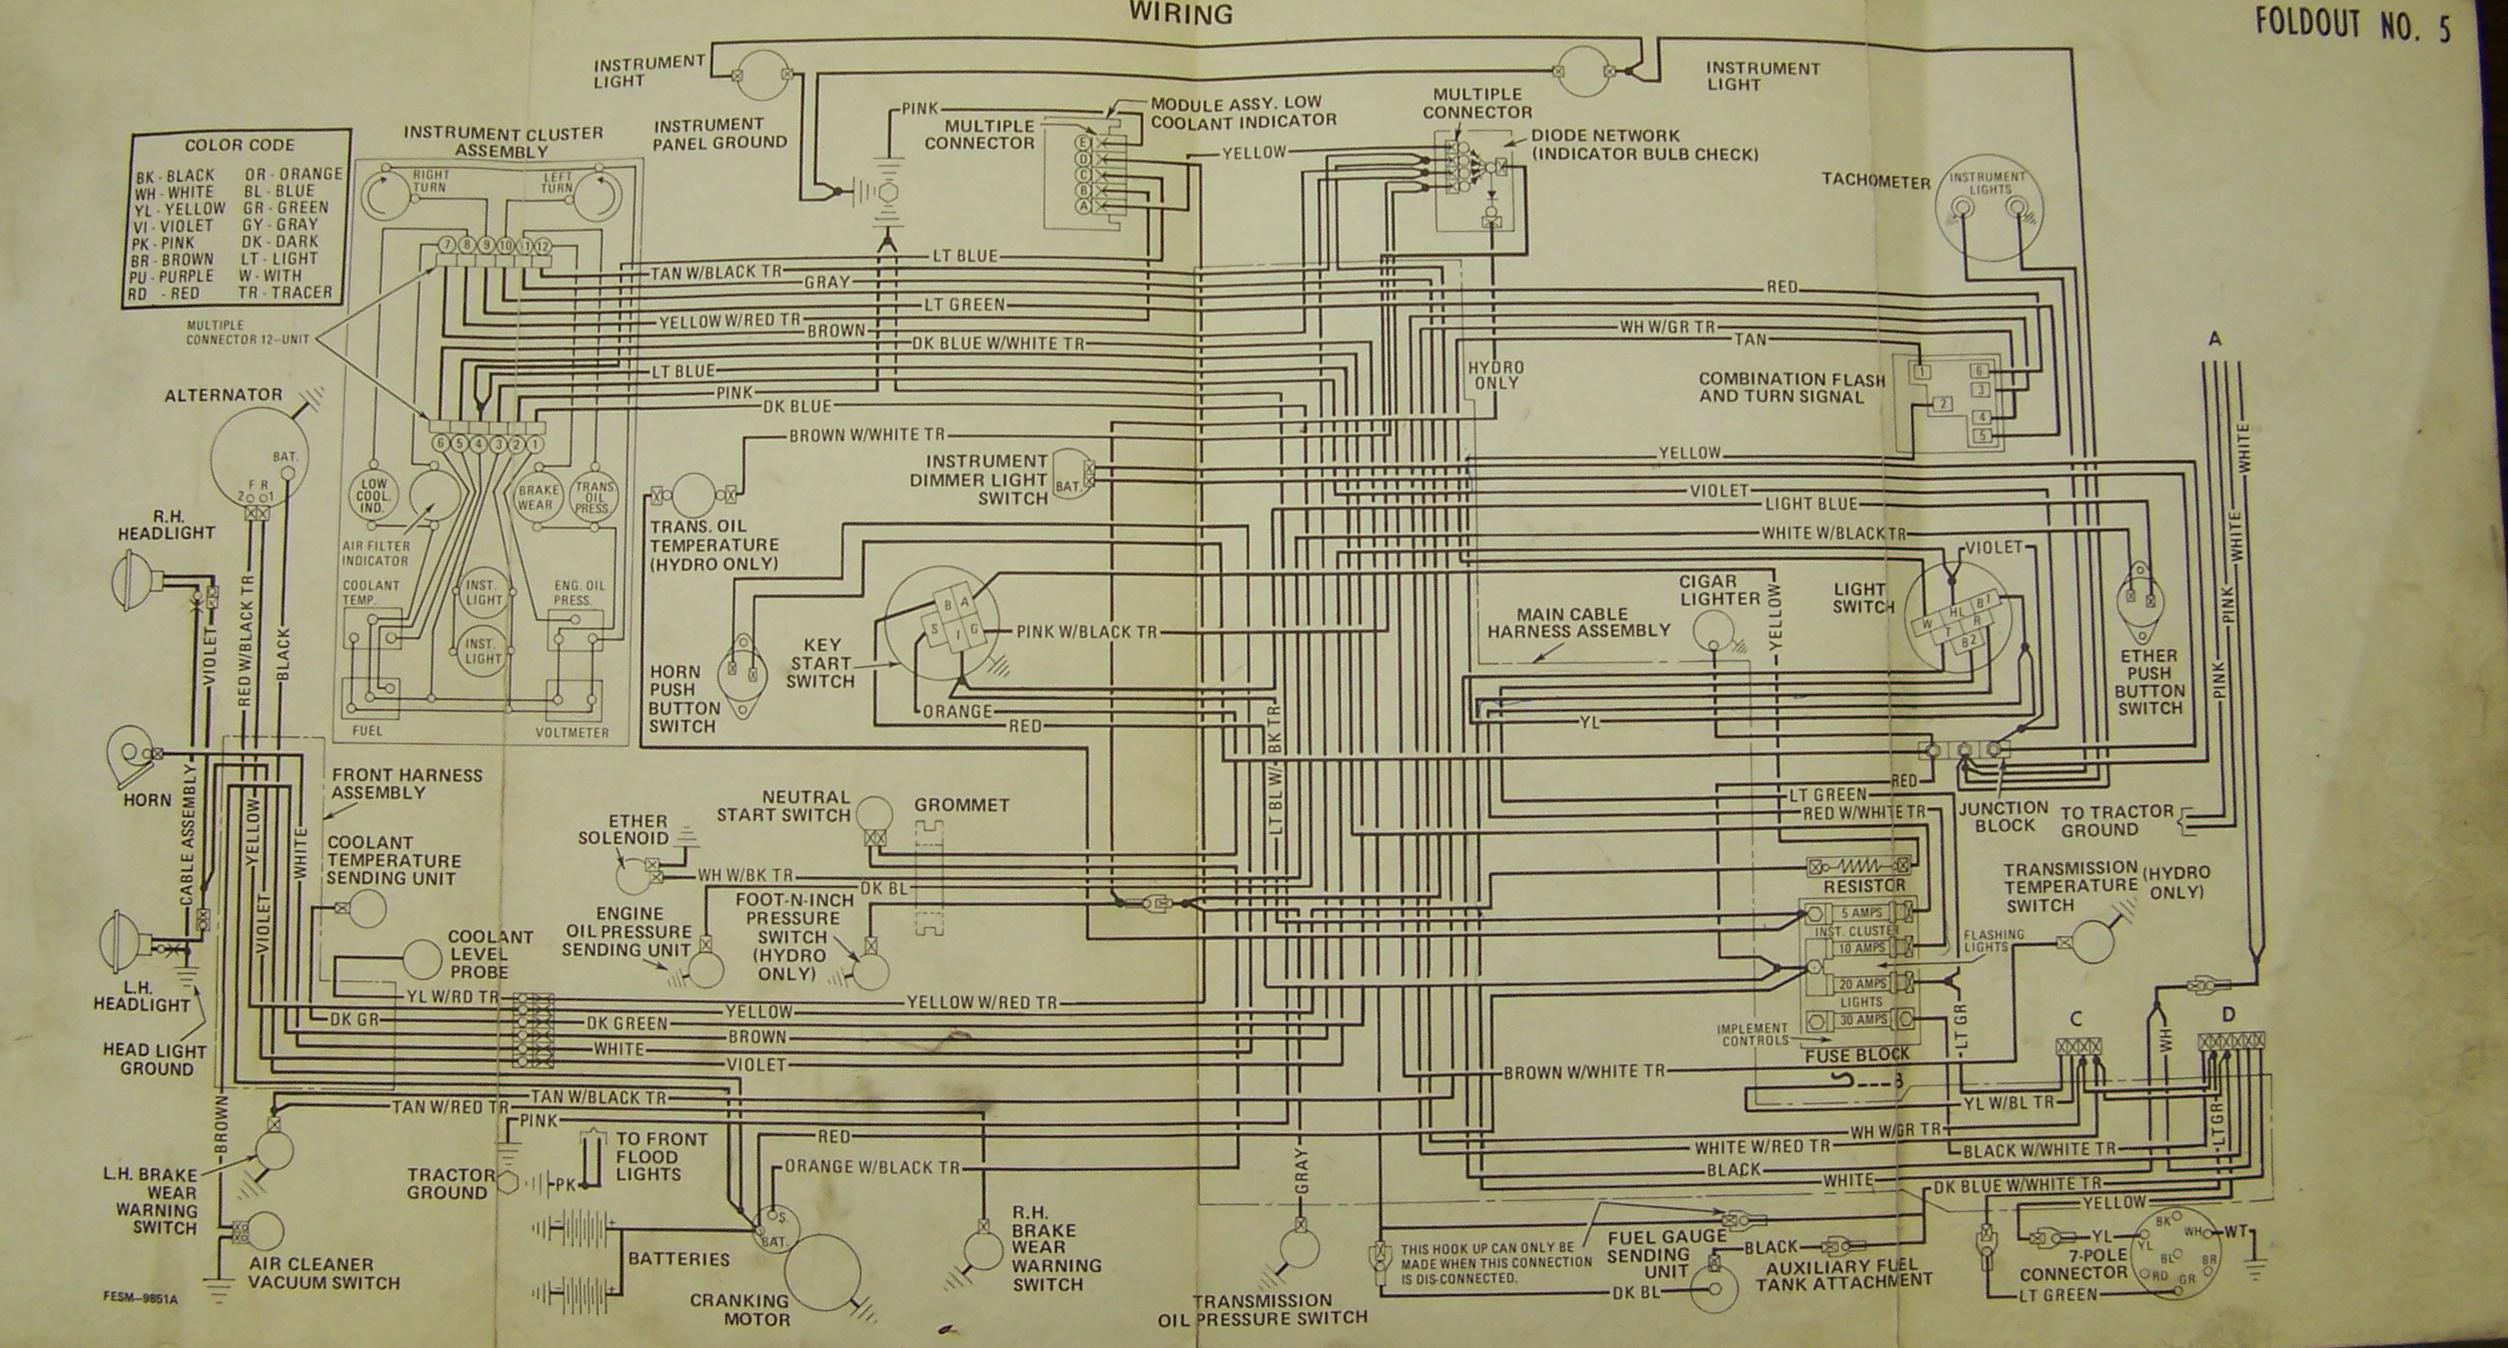 ih wiring diagrams basic wiring diagram u2022 rh rnetcomputer co case tractor wiring diagram manual case ih 1680 wiring diagram